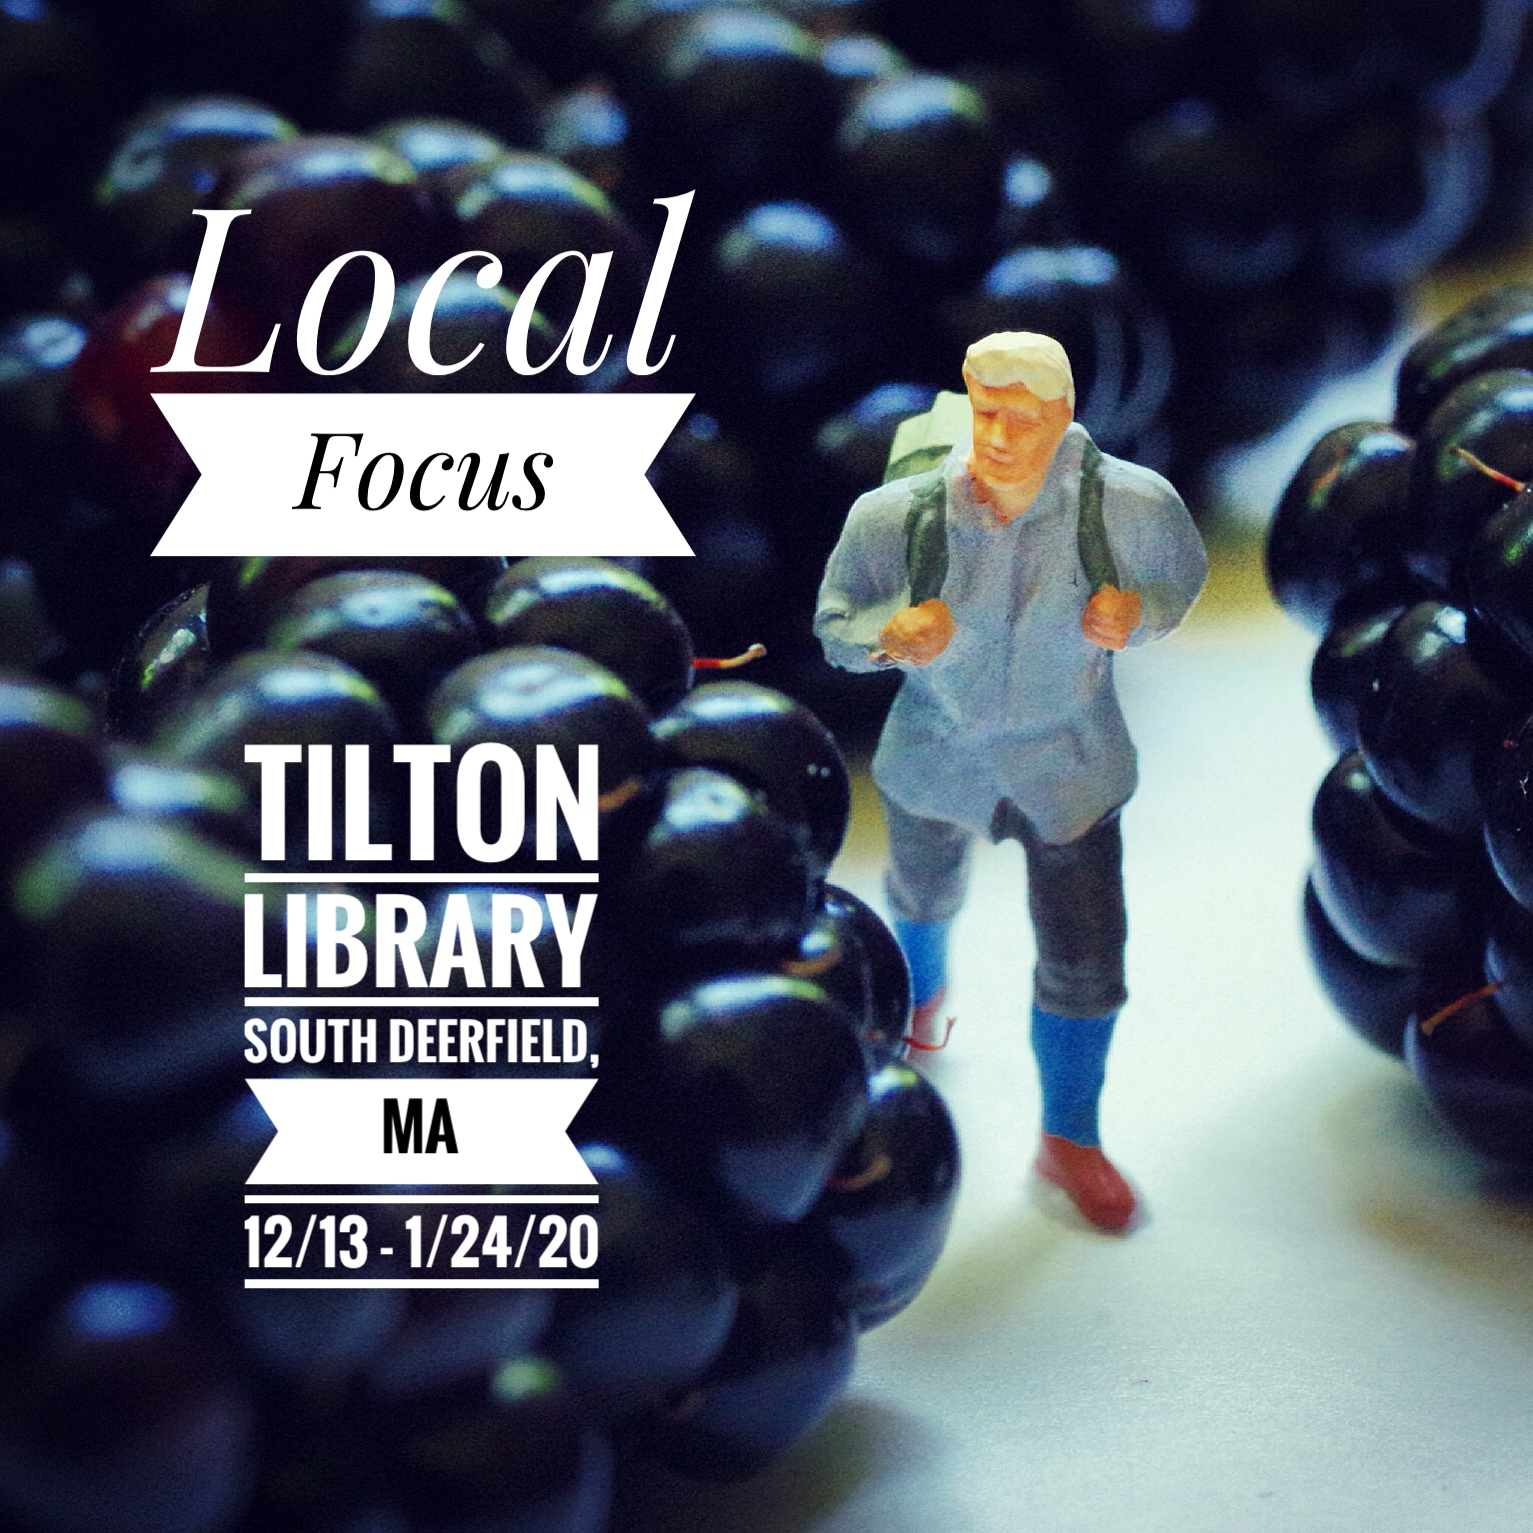 Local Focus At The Tilton Library, South Deerfield, MA